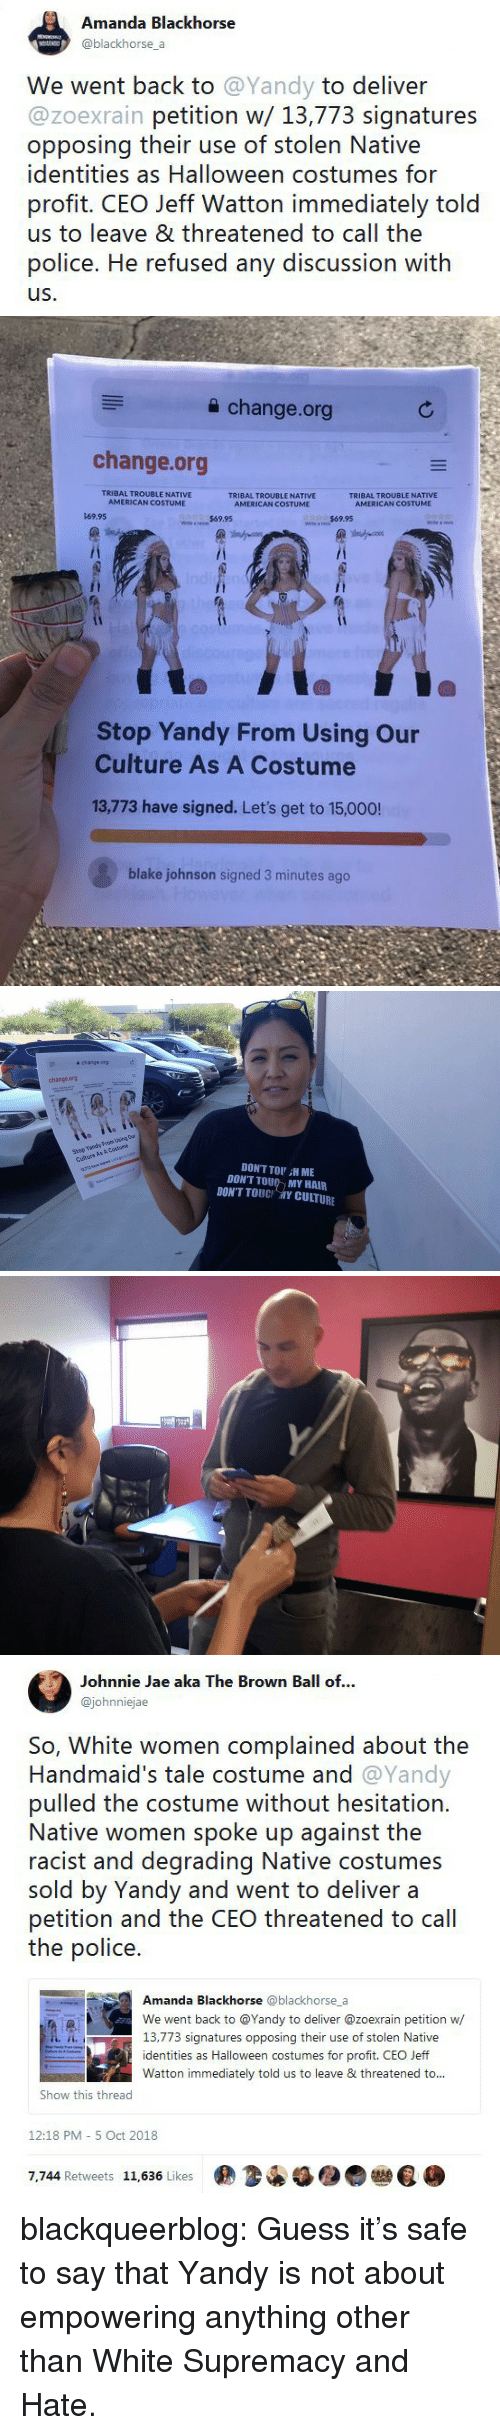 Halloween, Native American, and Police: Amanda Blackhorse  @blackhorse a  We went back to @Yandy to deliver  @zoexrain petition w/ 13,773 signatures  opposing their use of stolen Native  identities as Halloween costumes for  profit. CEO Jeff Watton immediately told  us to leave & threatened to call the  police. He refused any discussion with  us.   a change.org  change.org  TRIBAL TROUBLE NATIVE  AMERICAN COSTUME  TRIBAL TROUBLE NATIVE  AMERICAN COSTUME  TRIBAL TROUBLE NATIVE  69.95  $69.95  Stop Yandy From Using Our  Culture As A Costume  13,773 have signed. Let's get to 15,000!  blake johnson signed 3 minutes ago   슐 change.org  change.org  Stop Yandy From Using Our  Culture As A Costume  13773 have signed. Lets get to 150  DON'T TOU H ME  DON'T TOU MY HAIR  DONT TOUC 개Y CULTURE   Johnnie Jae aka The Brown Ball of...  @johnniejae  So, White women complained about the  Handmaid's tale costume and @Yandy  pulled the costume without hesitation.  Native women spoke up against the  racist and degrading Native costumes  sold by Yandy and went to deliver a  petition and the CEO threatened to cal  the police.  Amanda Blackhorse @blackhorse_a  We went back to @Yandy to deliver @zoexrain petition w  13,773 signatures opposing their use of stolen Native  identities as Halloween costumes for profit. CEO Jeff  Watton immediately told us to leave & threatened to..  Show this thread  12:18 PM- 5 Oct 2018  7,744 Retweets 11,636 Likes  佣34锰●● blackqueerblog:  Guess it's safe to say that Yandy is not about empowering anything other than White Supremacy and Hate.